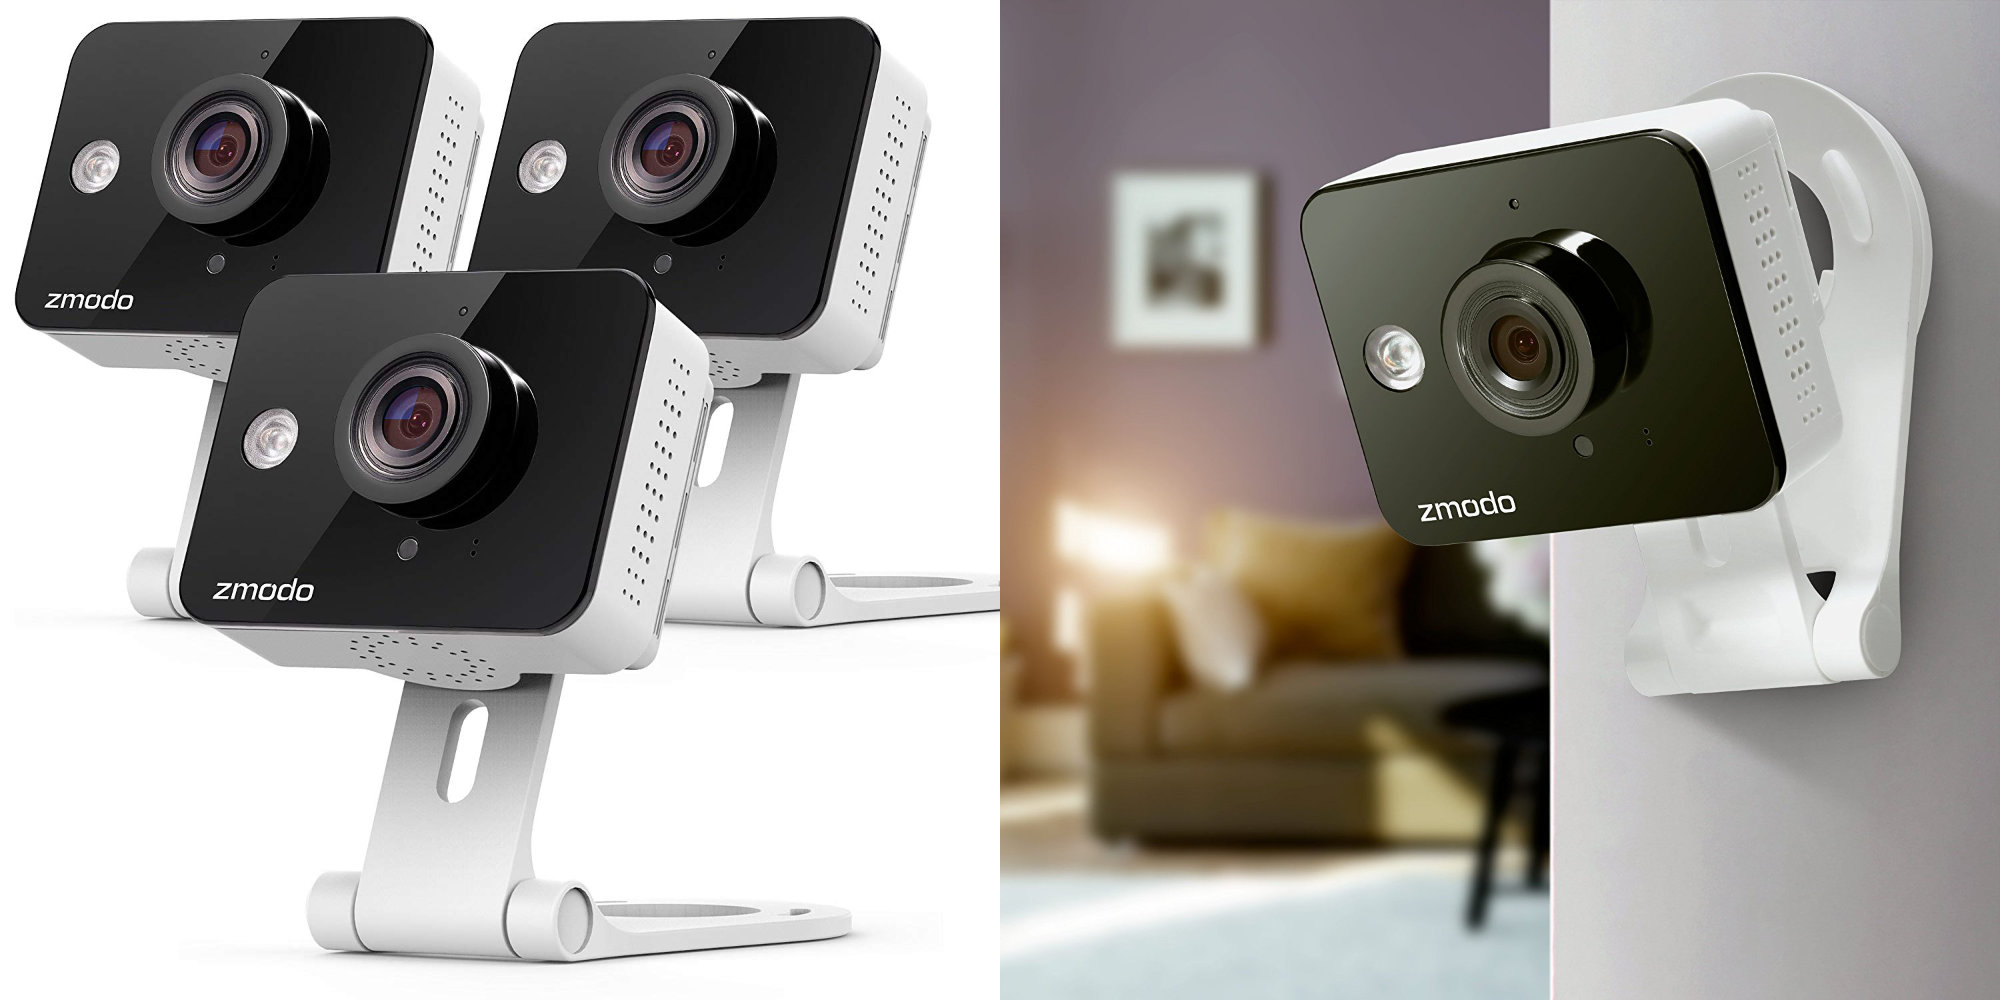 Save 25% when you buy this 3-pack of Zmodo 720p Wi-Fi